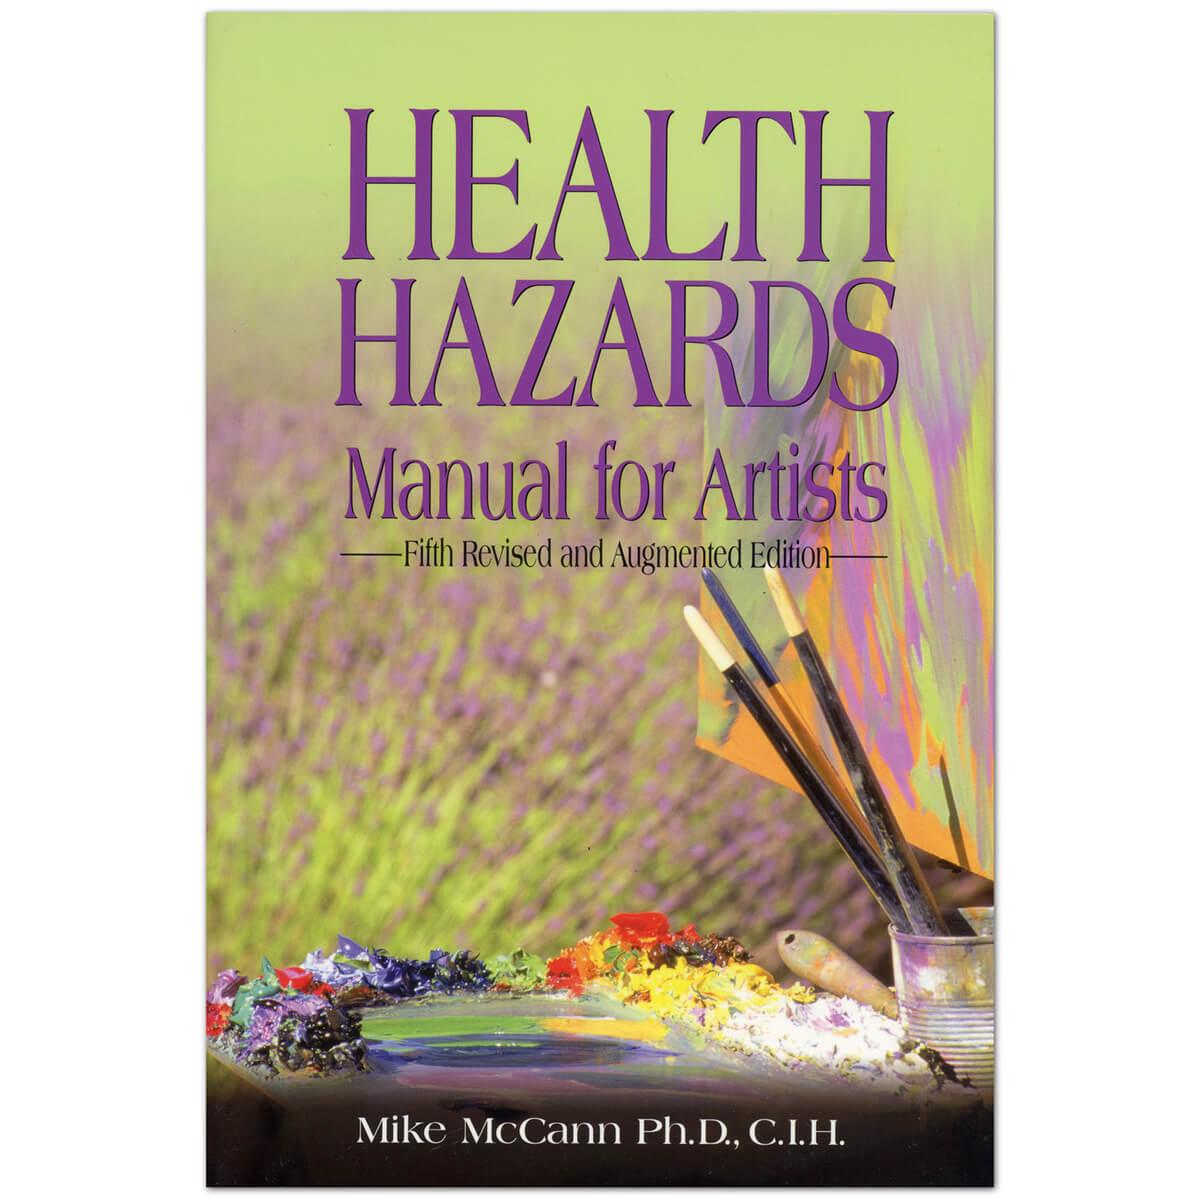 Books on Safety & Health